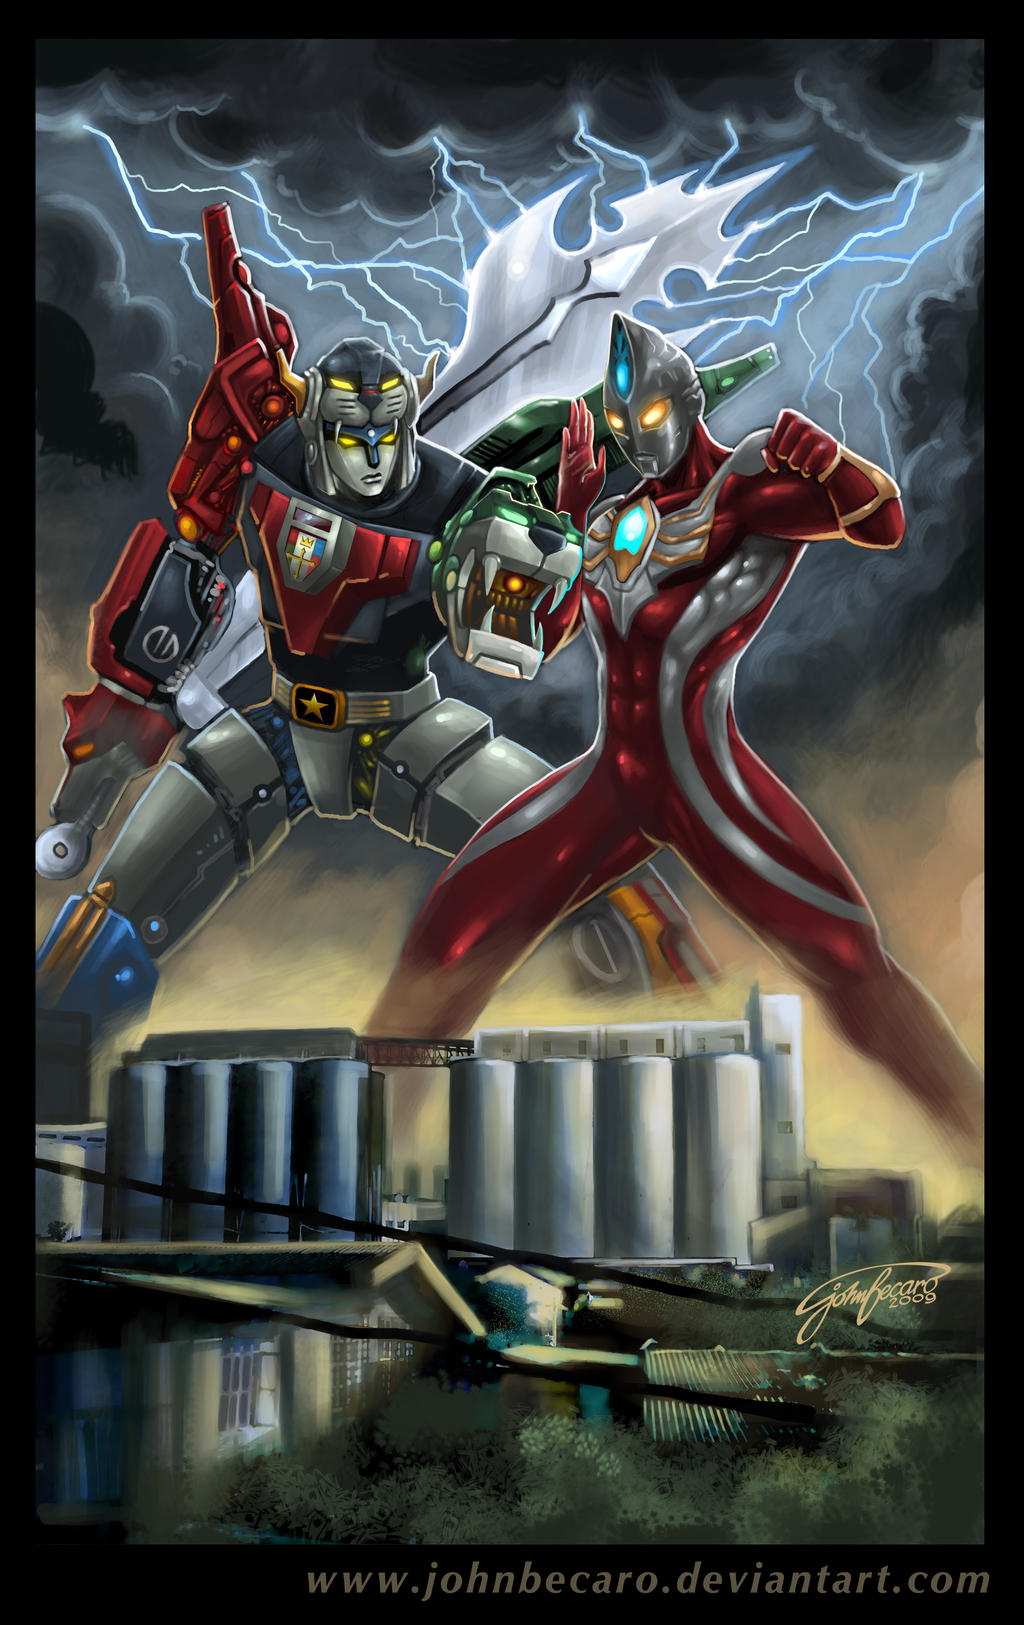 Voltron Vs Ultraman Max by johnbecaro